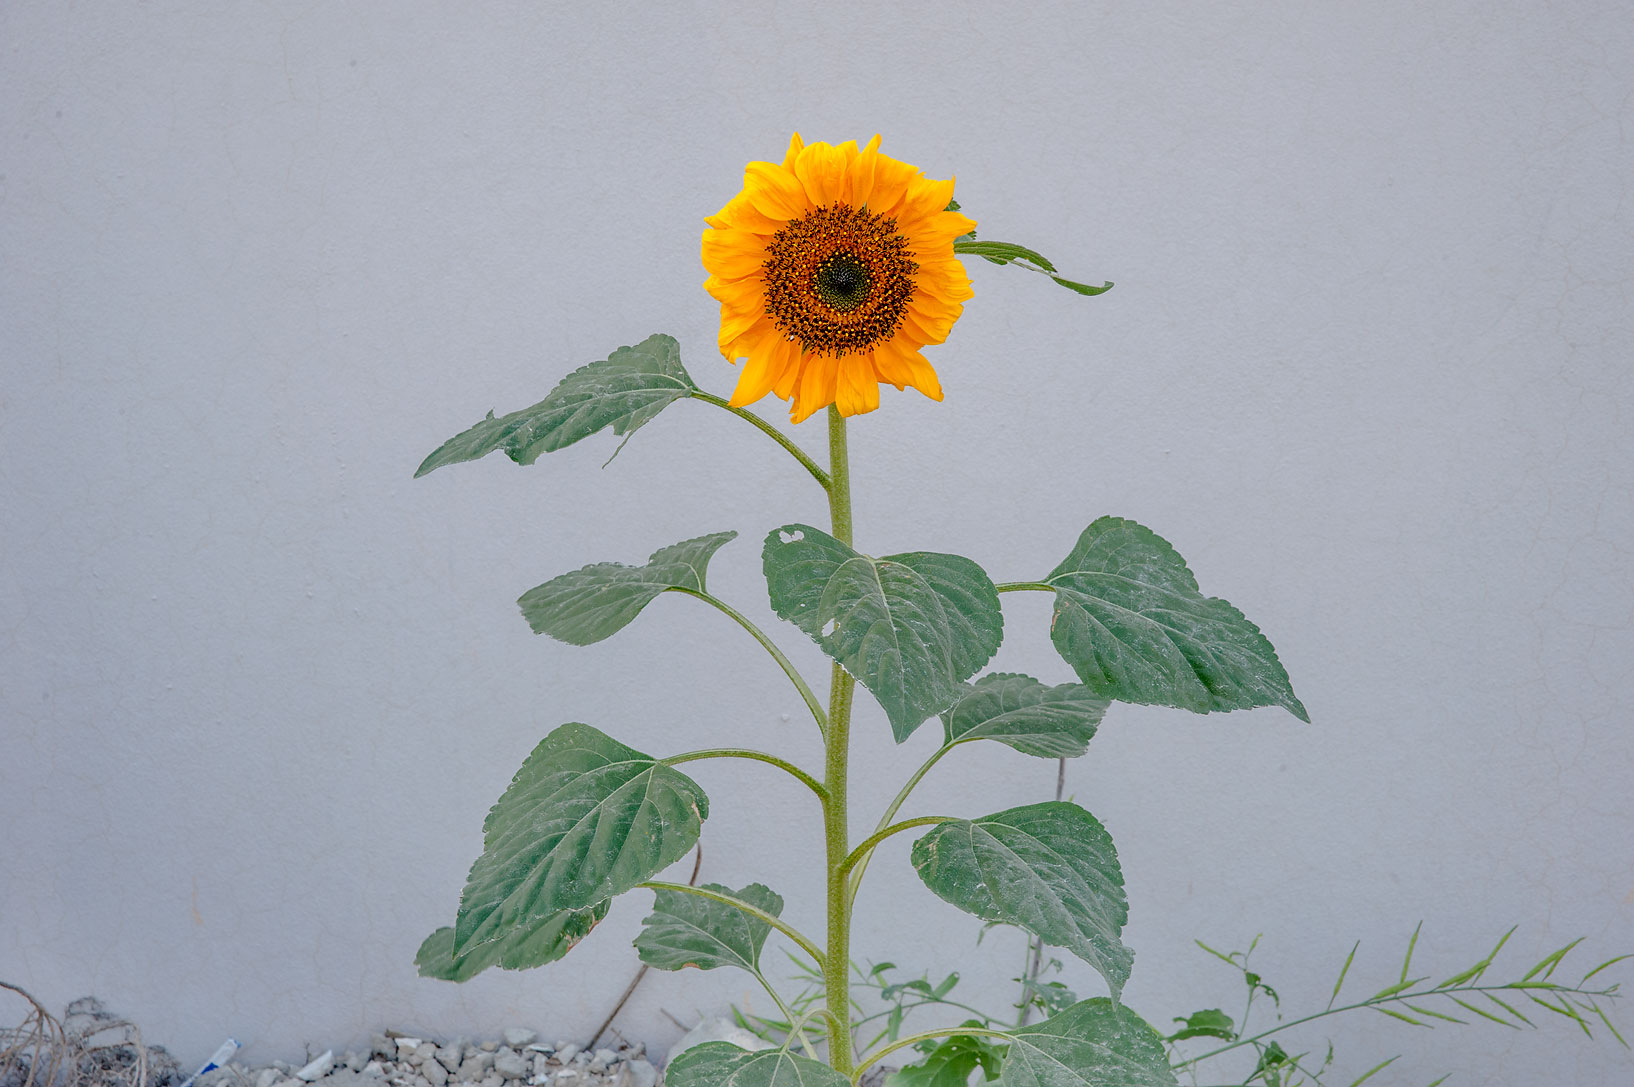 Common sunflower (Helianthus annuus) on roadside...in Um Lekhba neighborhood. Doha, Qatar